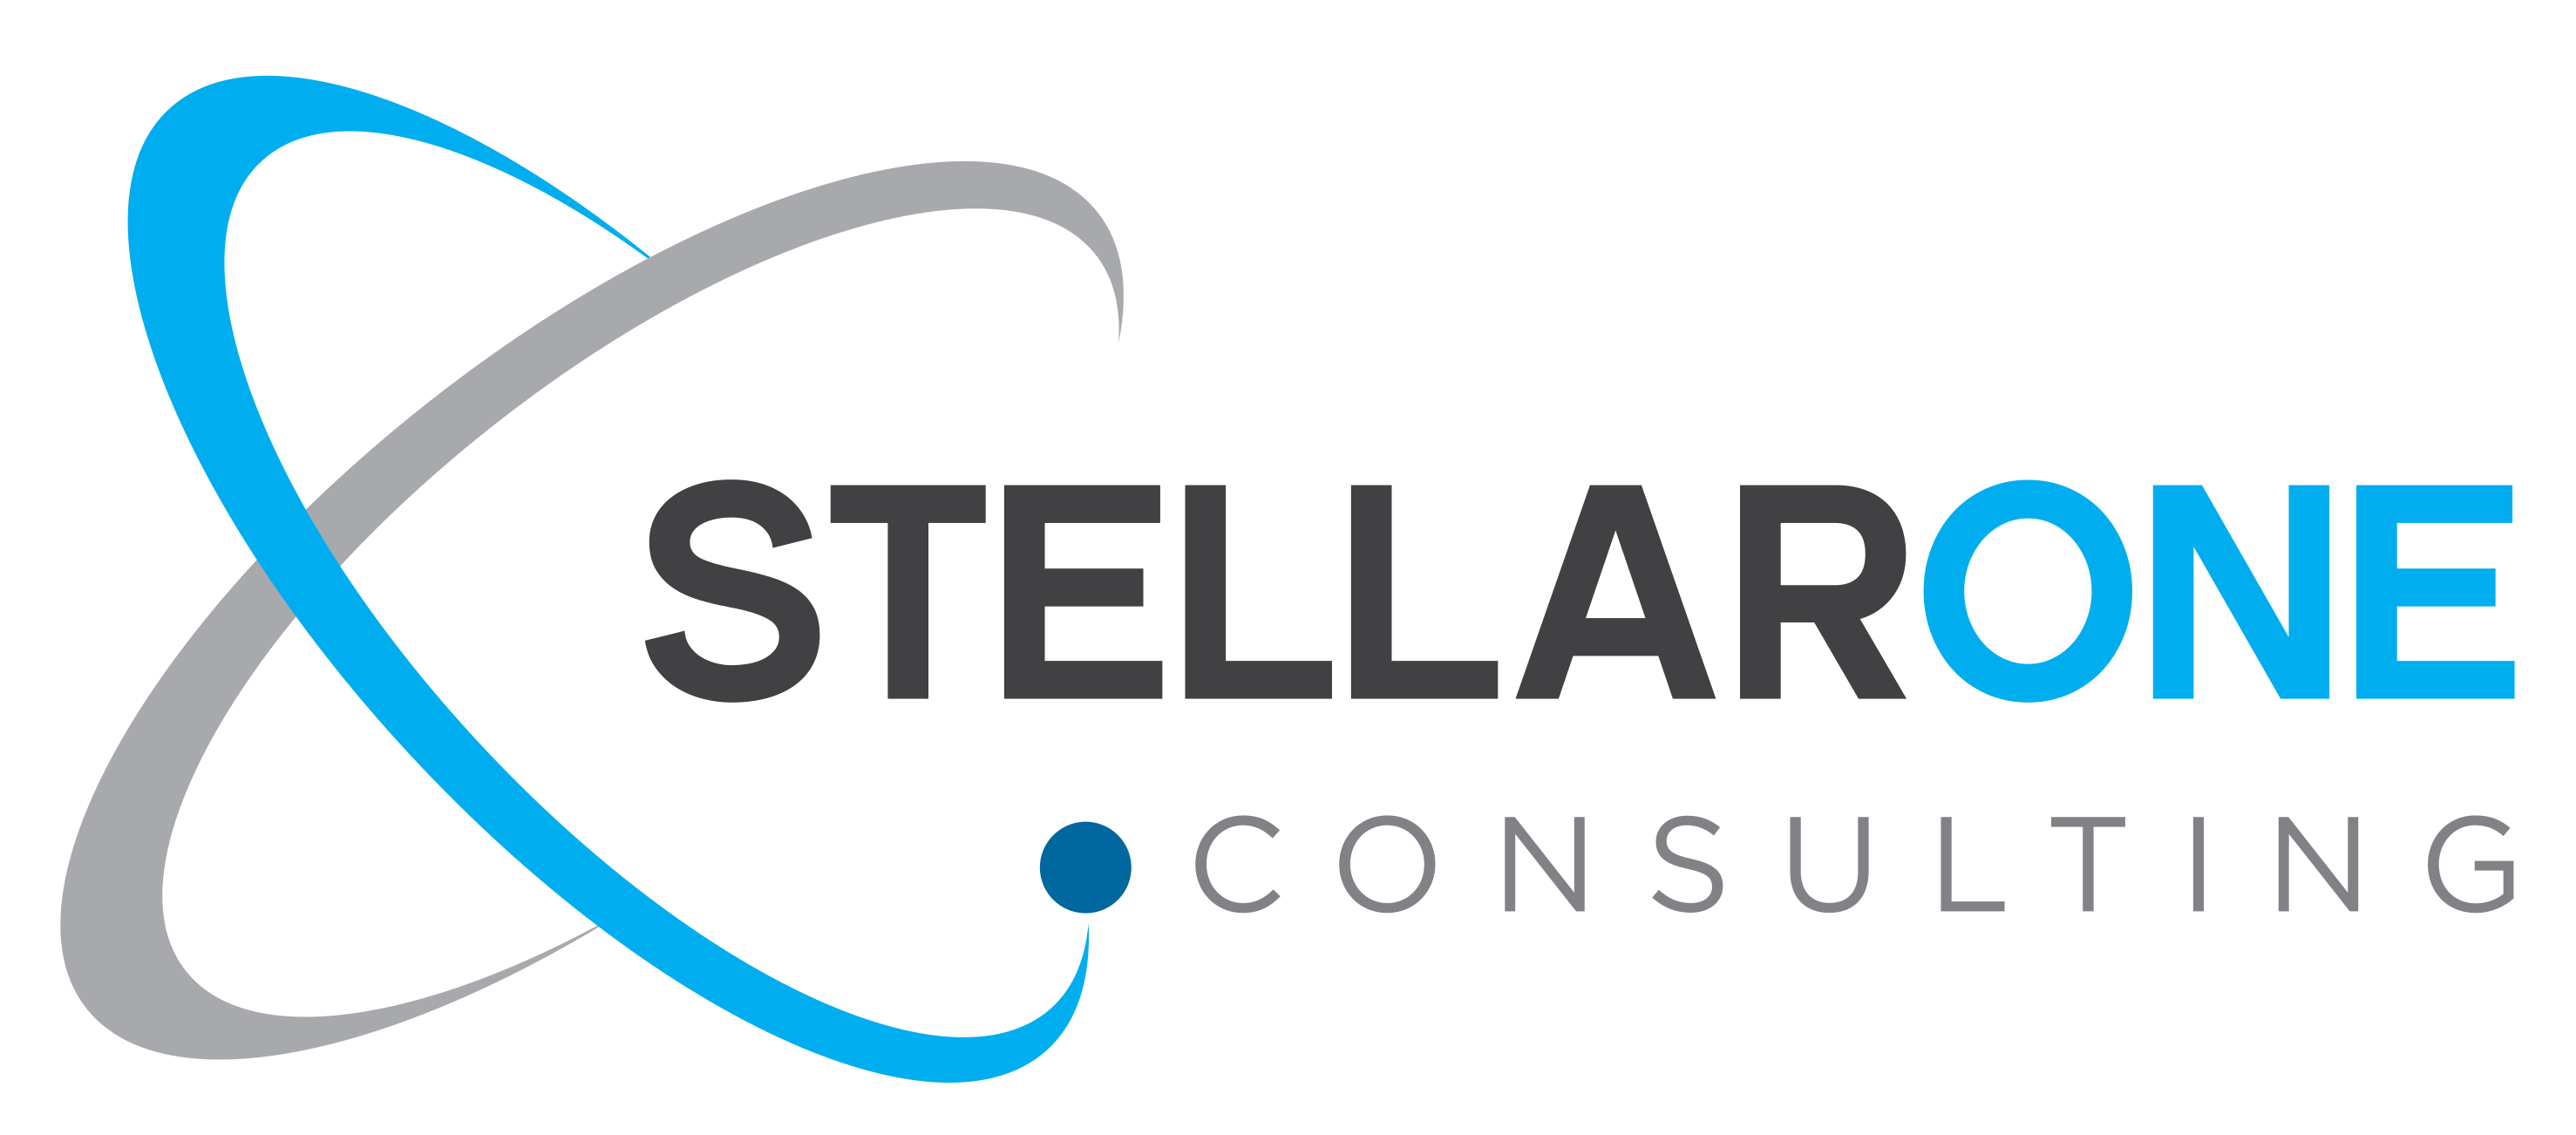 Stellar One Consulting is a proud SAP Business One Partner who specializes in ERP system implementation and consulting.